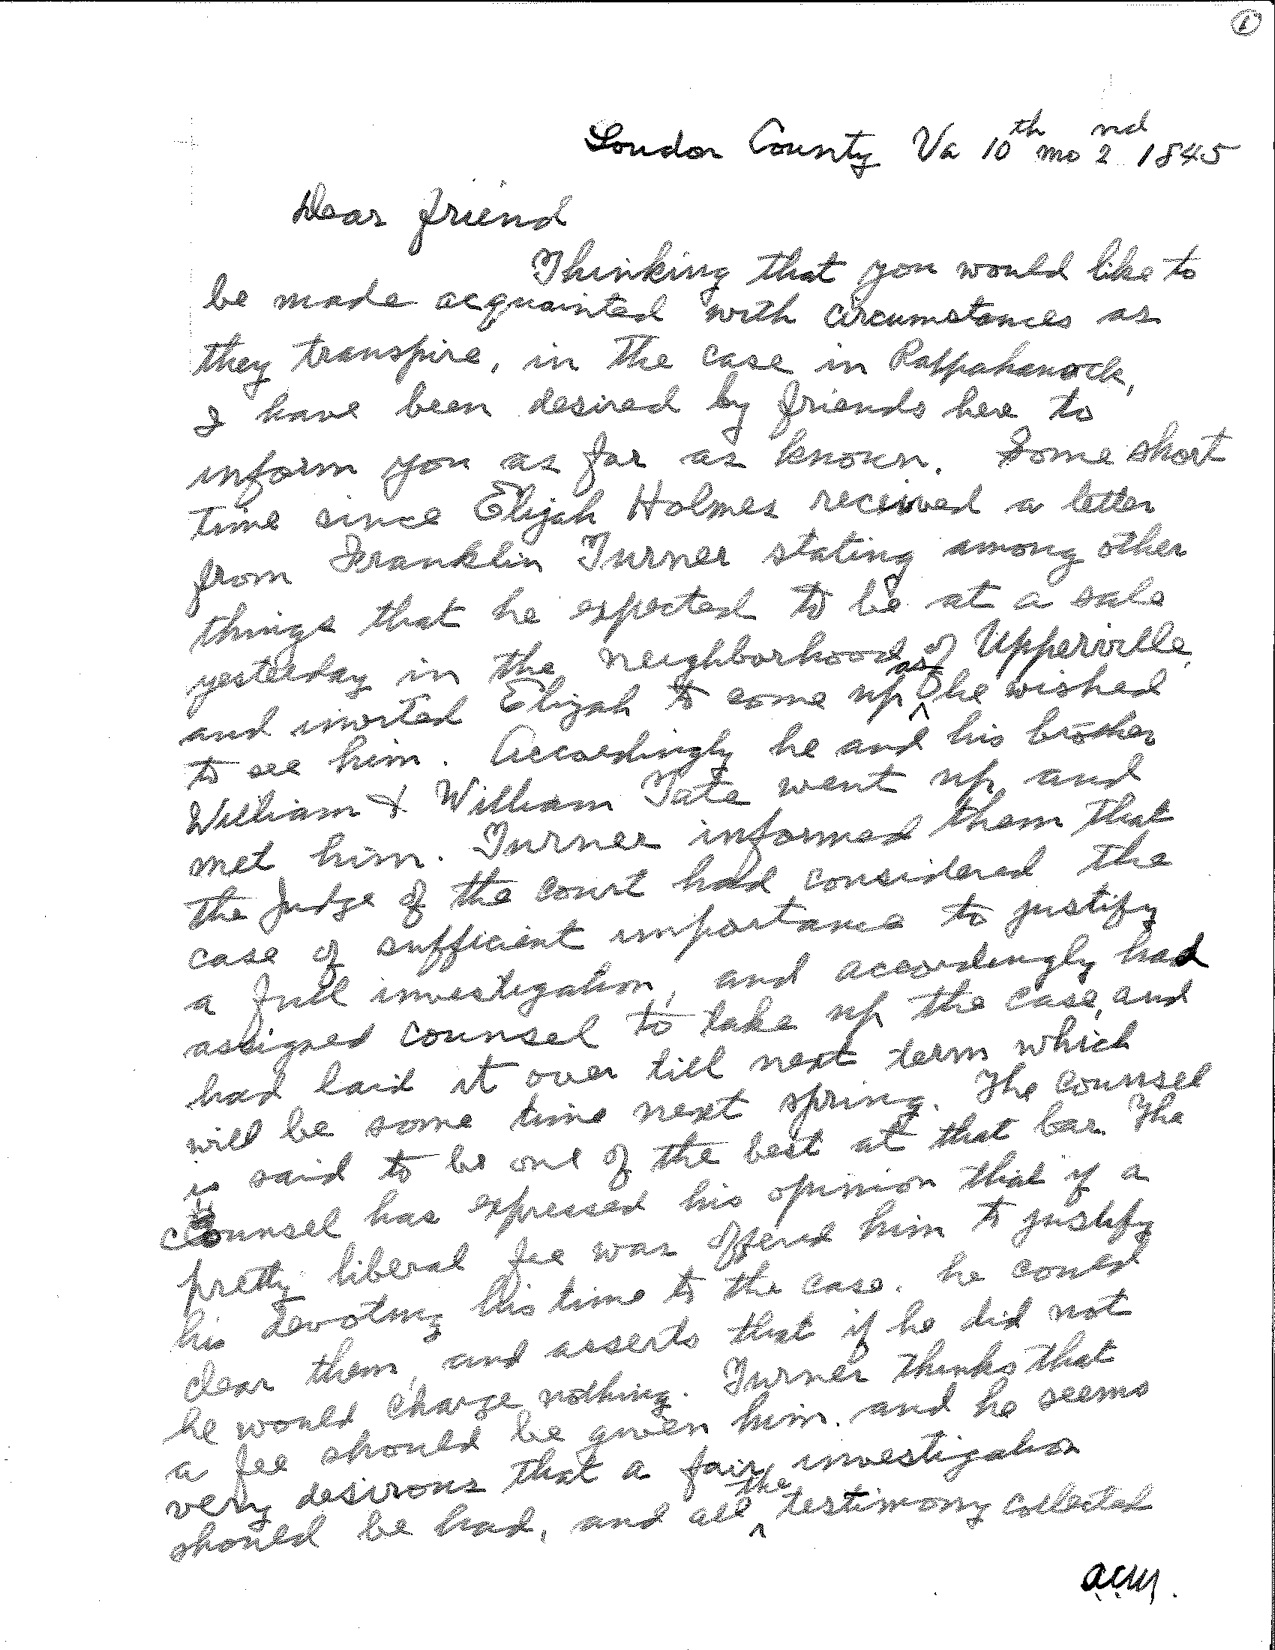 yardley taylor letter to Cyrus Griest 1845 page 1